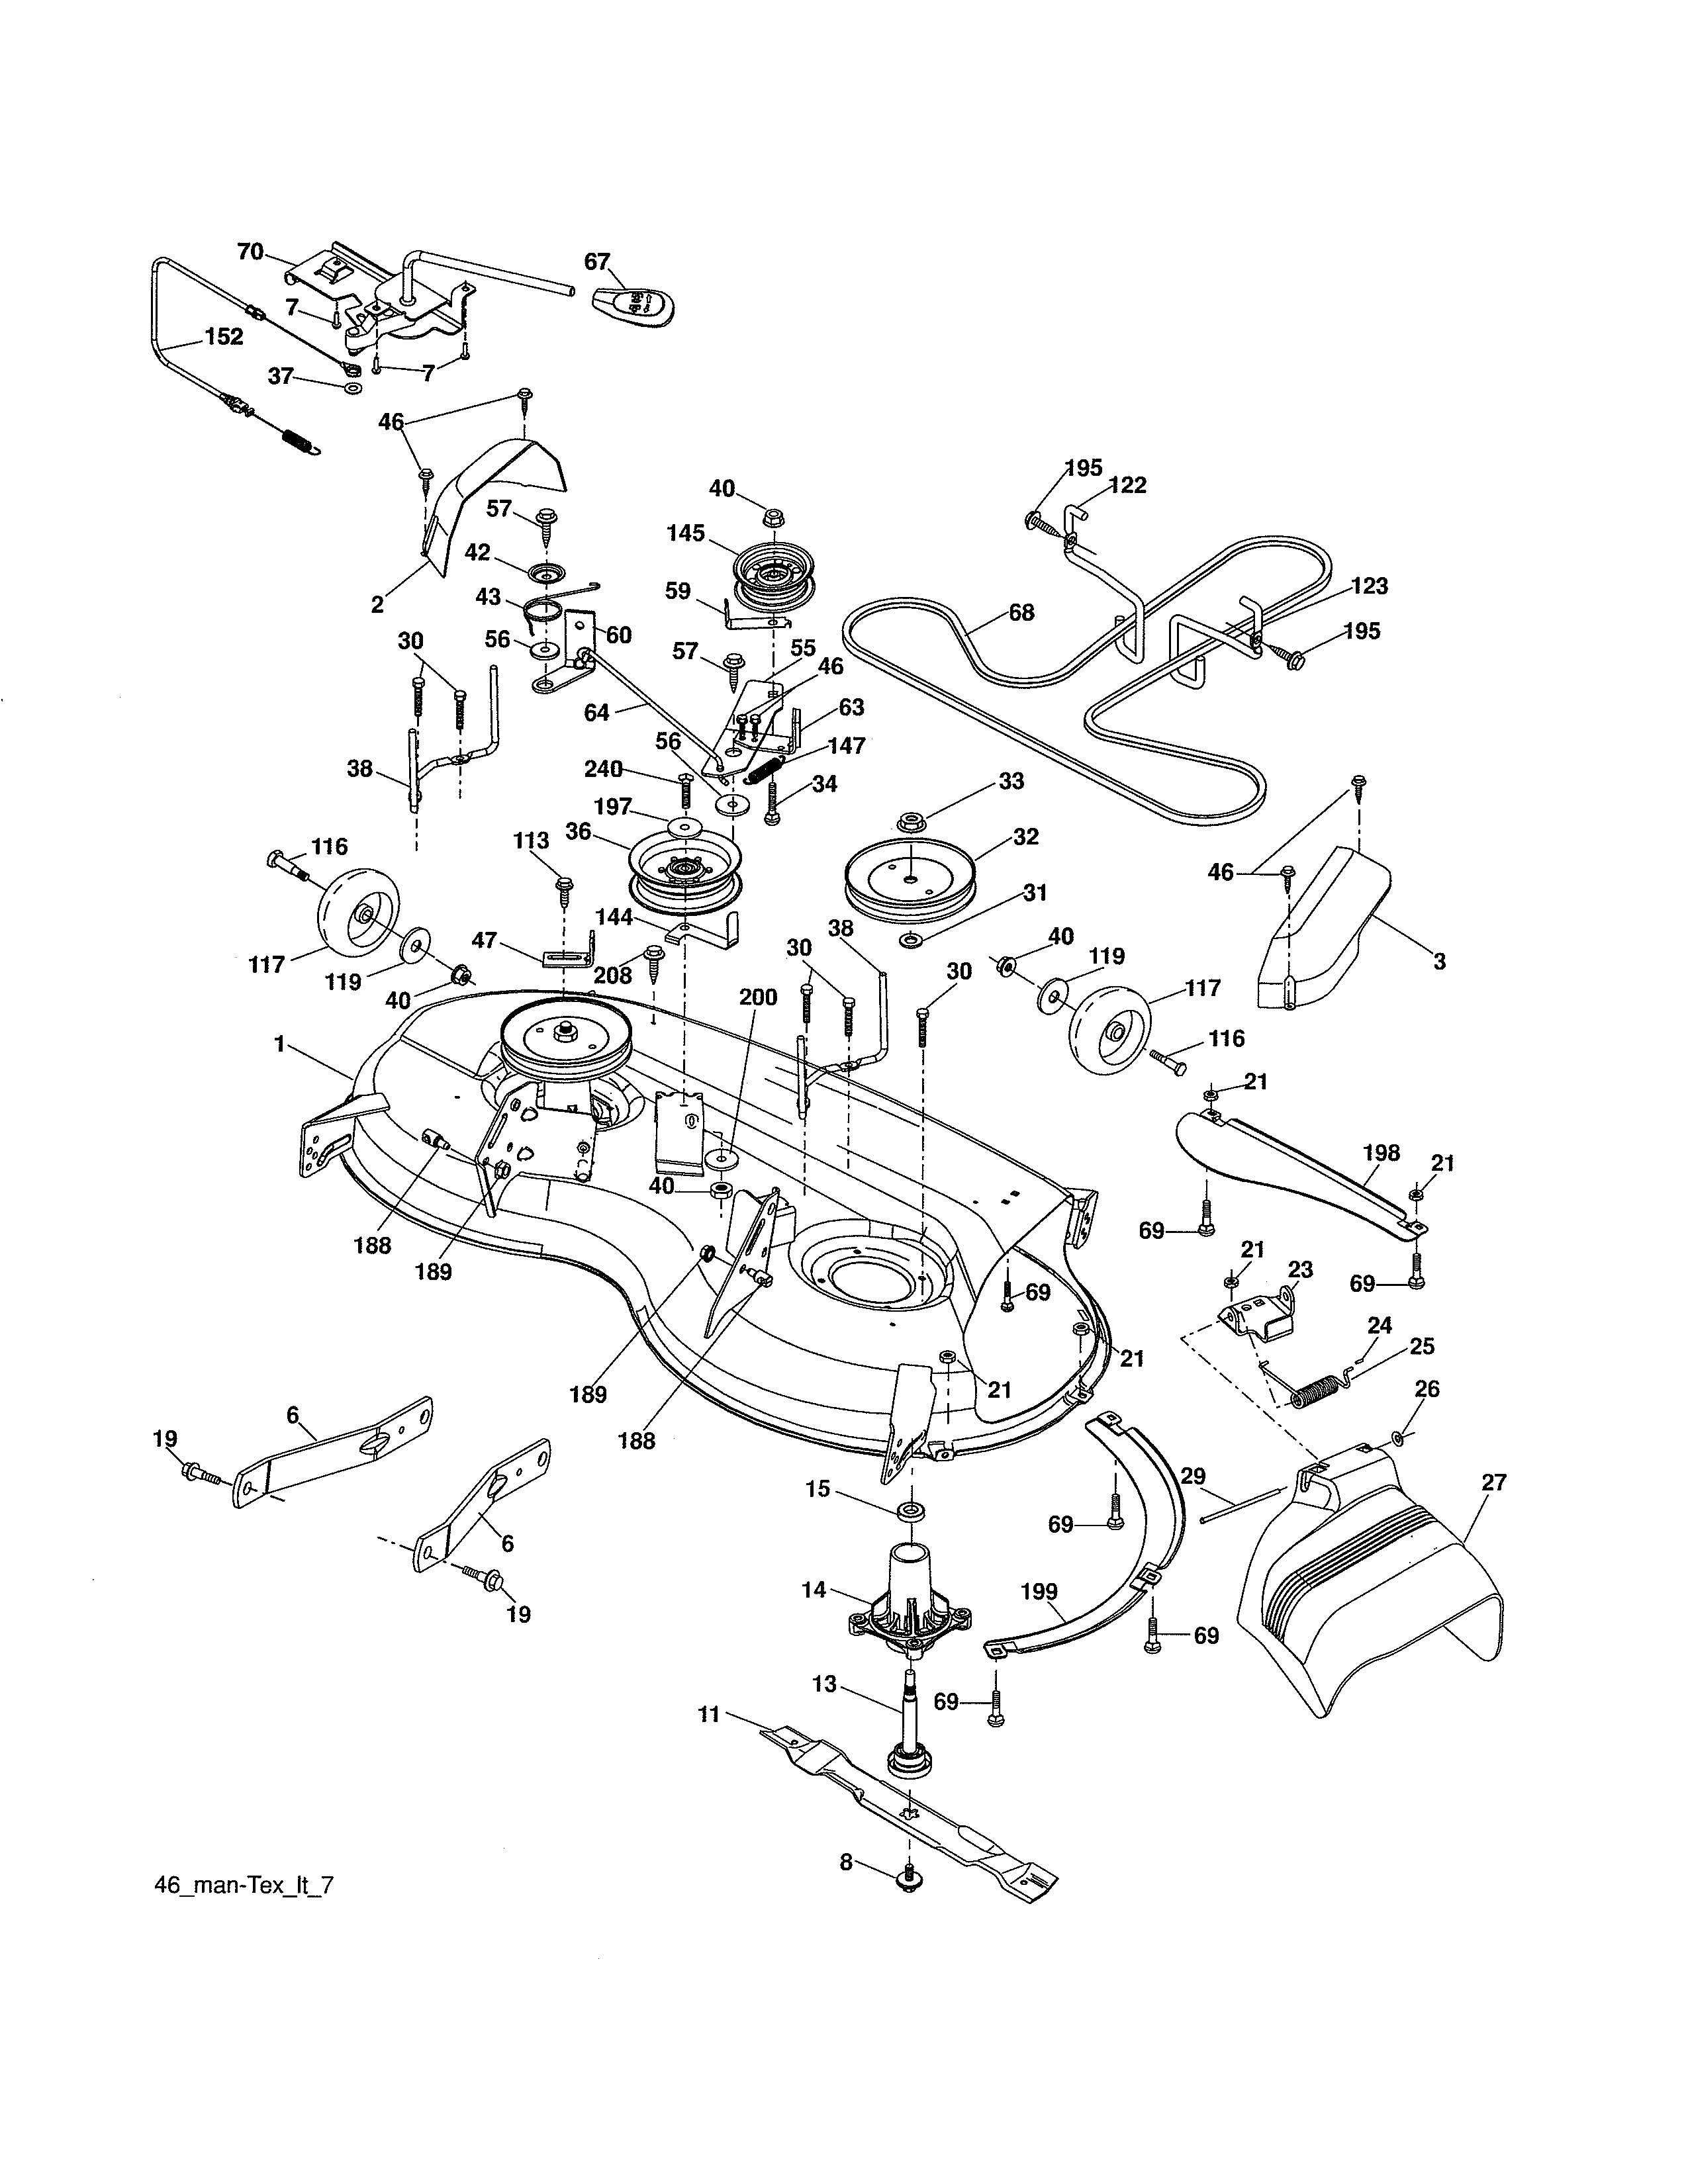 46 Inch Ariens Mower Wiring Diagram Diagrams 116 John Deere Lawn Tractor Parts Model A20k46yt